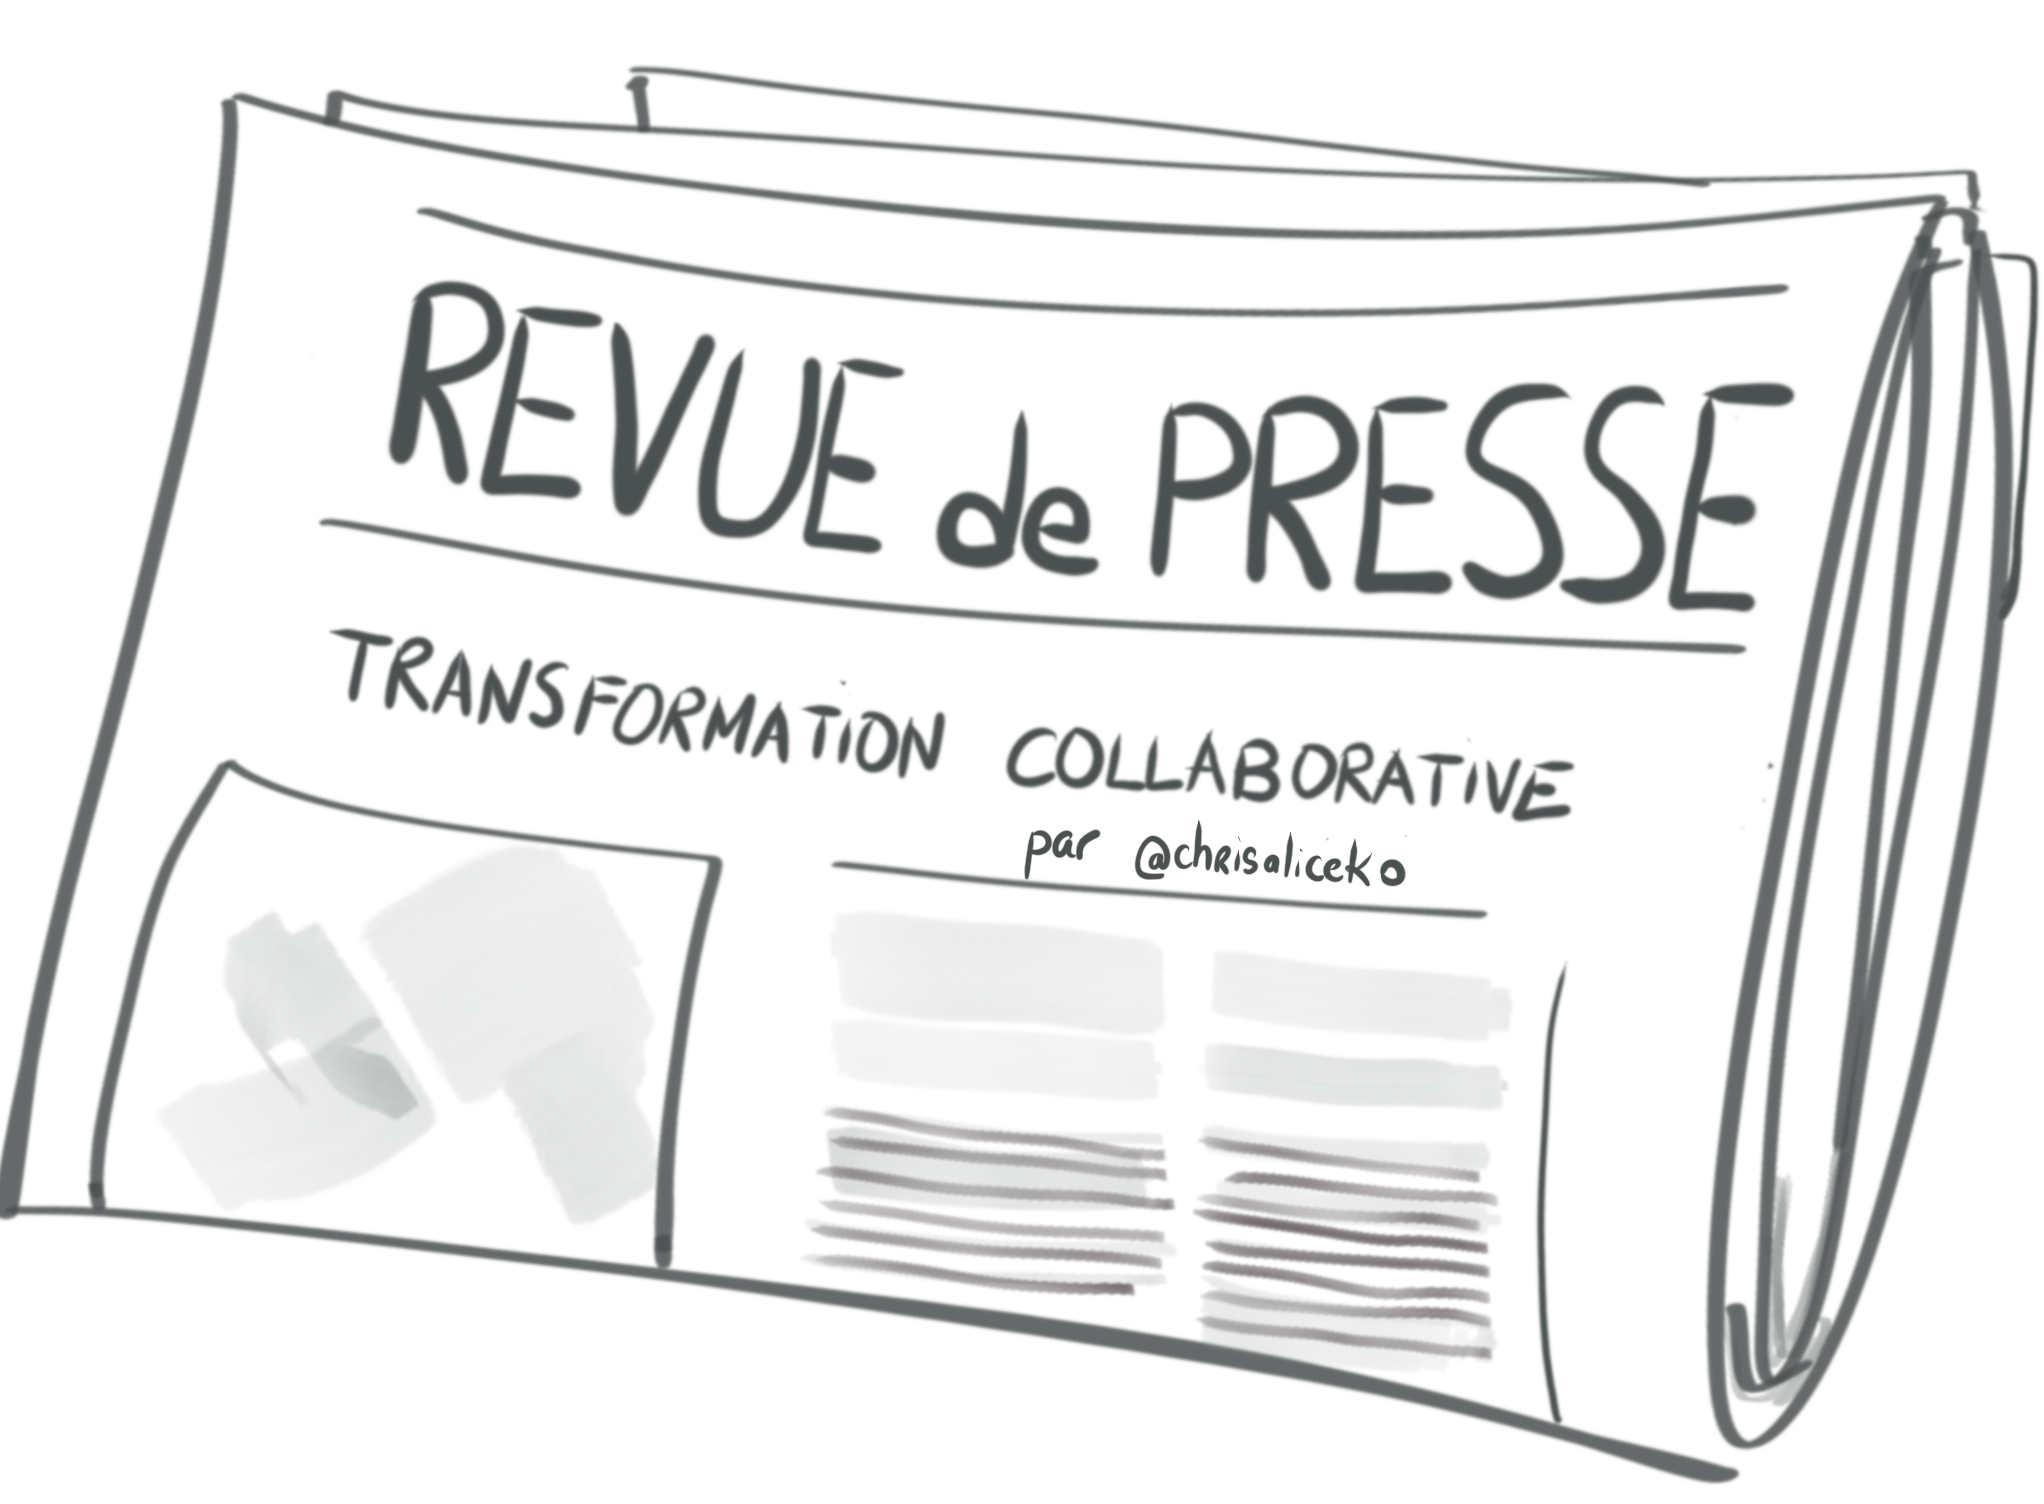 Revue de presse de la transformation collaborative sketchnote